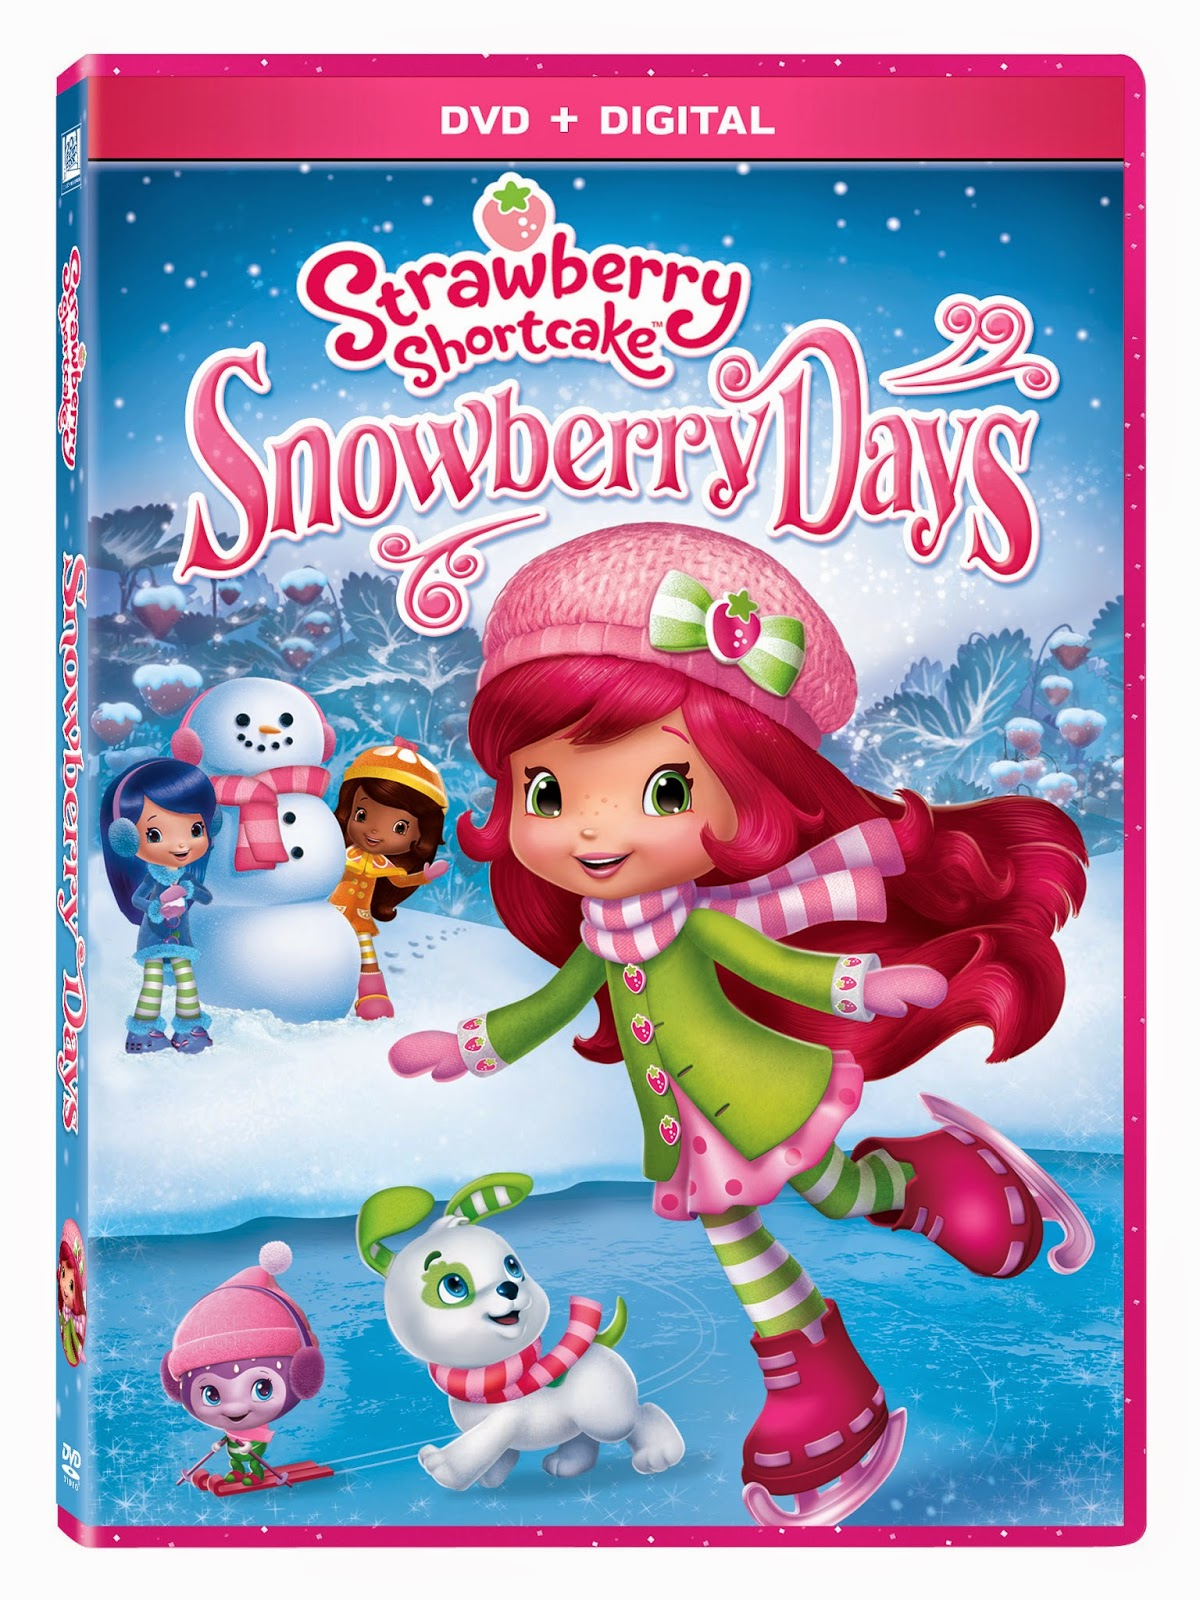 Mommy blog expert review strawberry shortcake kids dvd digital while its chilly outside children can enjoy winter fun indoors with this sweet new strawberry shortcake movie video episode havoc and hilarity break loose publicscrutiny Gallery